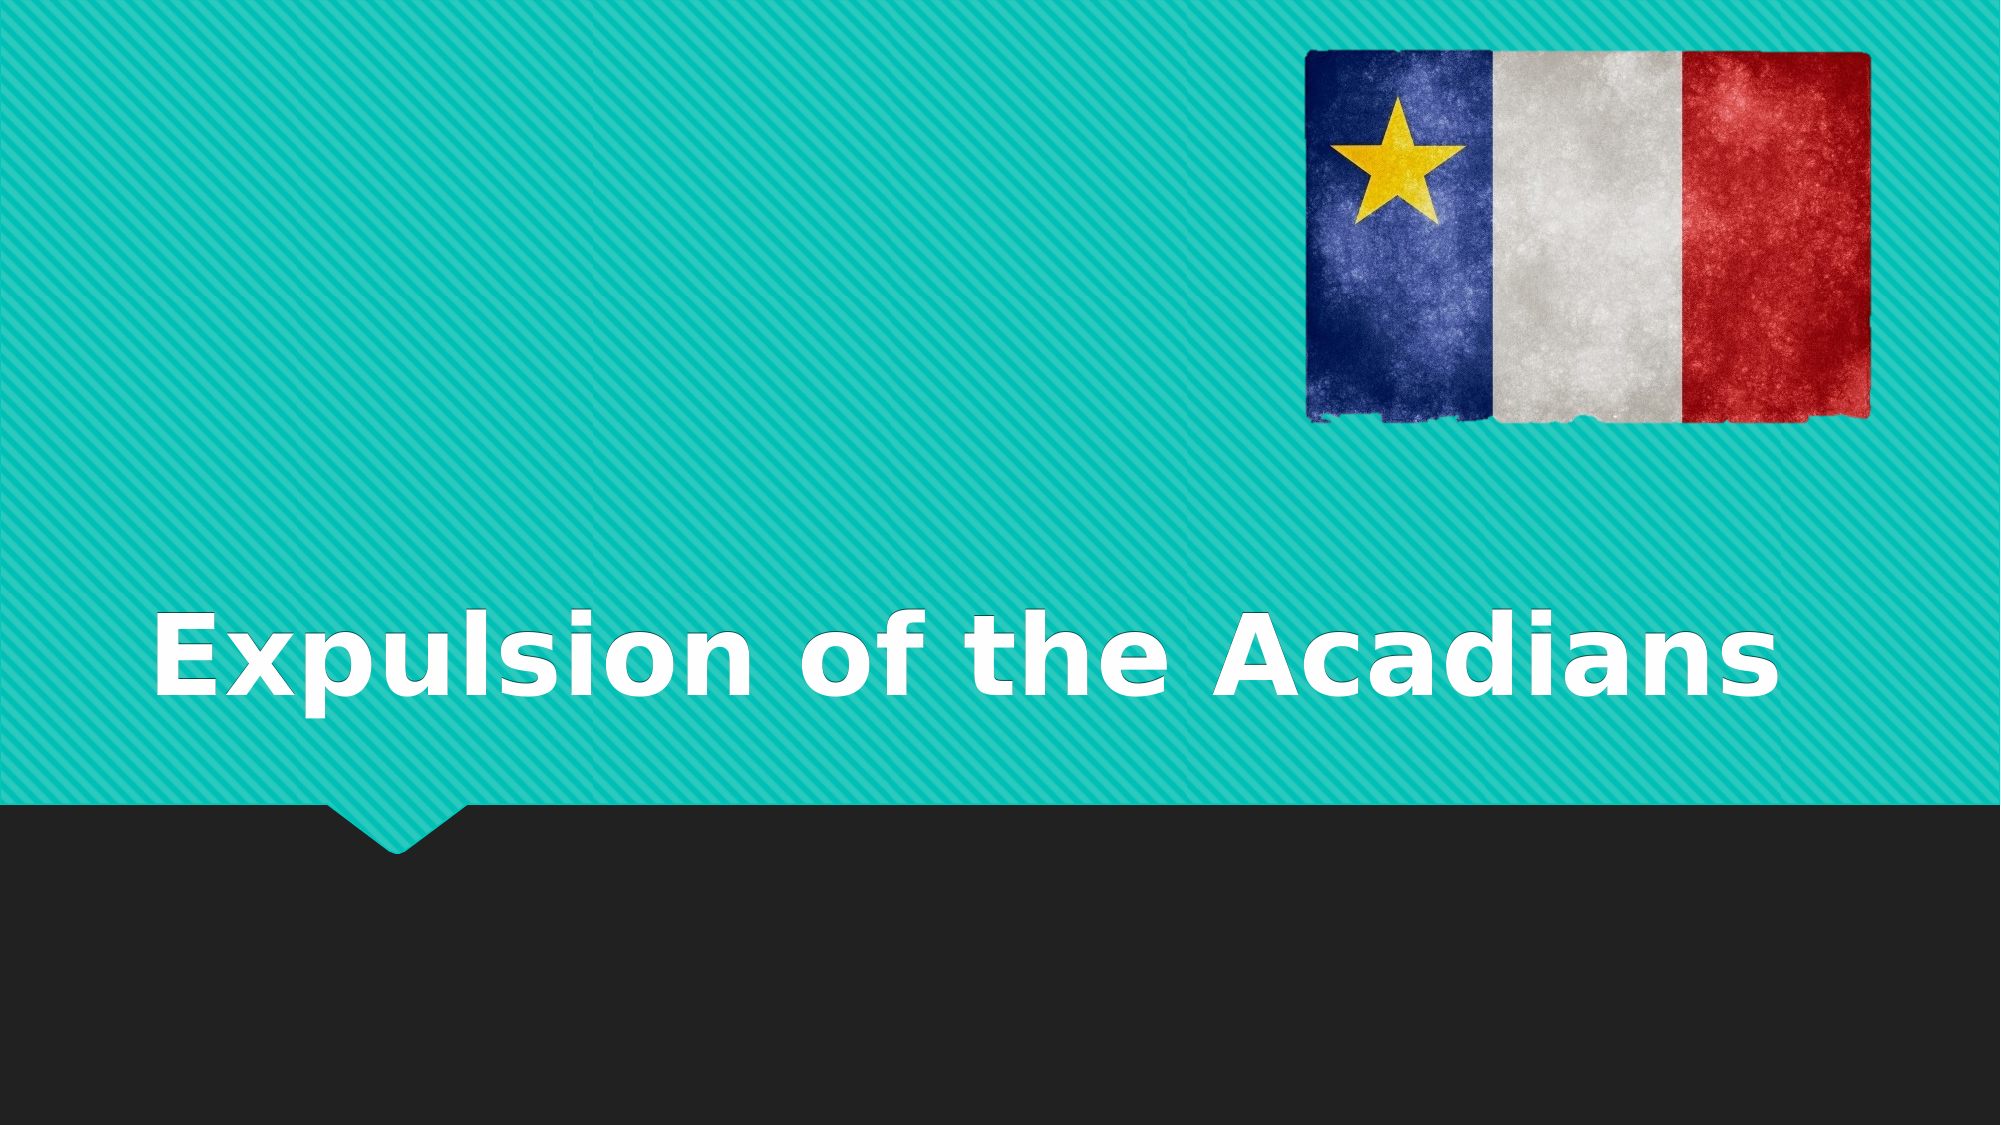 Expulsion of the Acadians Lesson Resource Preview